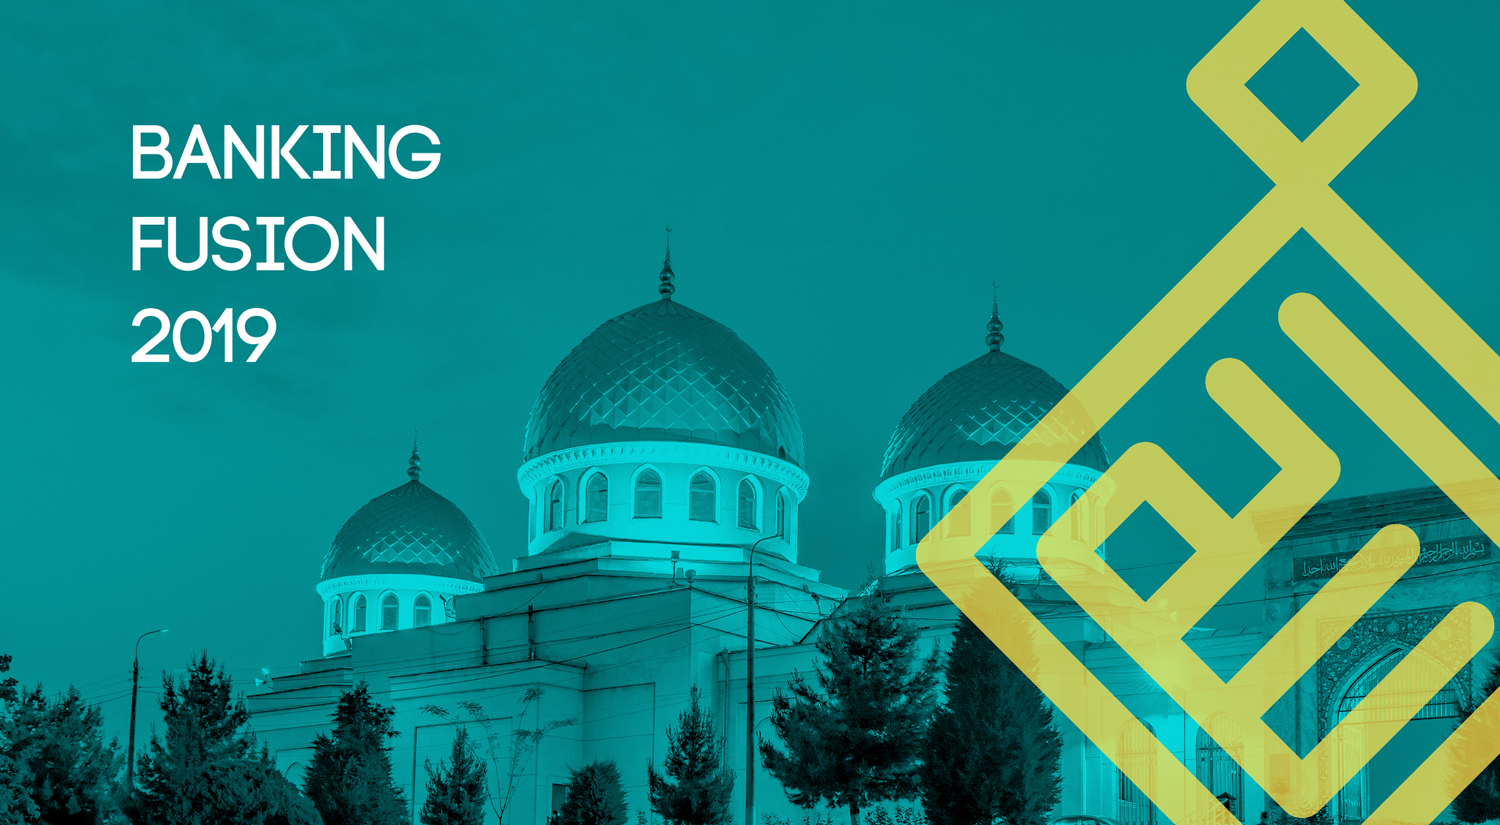 Banking Fusion 2019 will bring bankers from 6 countries together in Tashkent